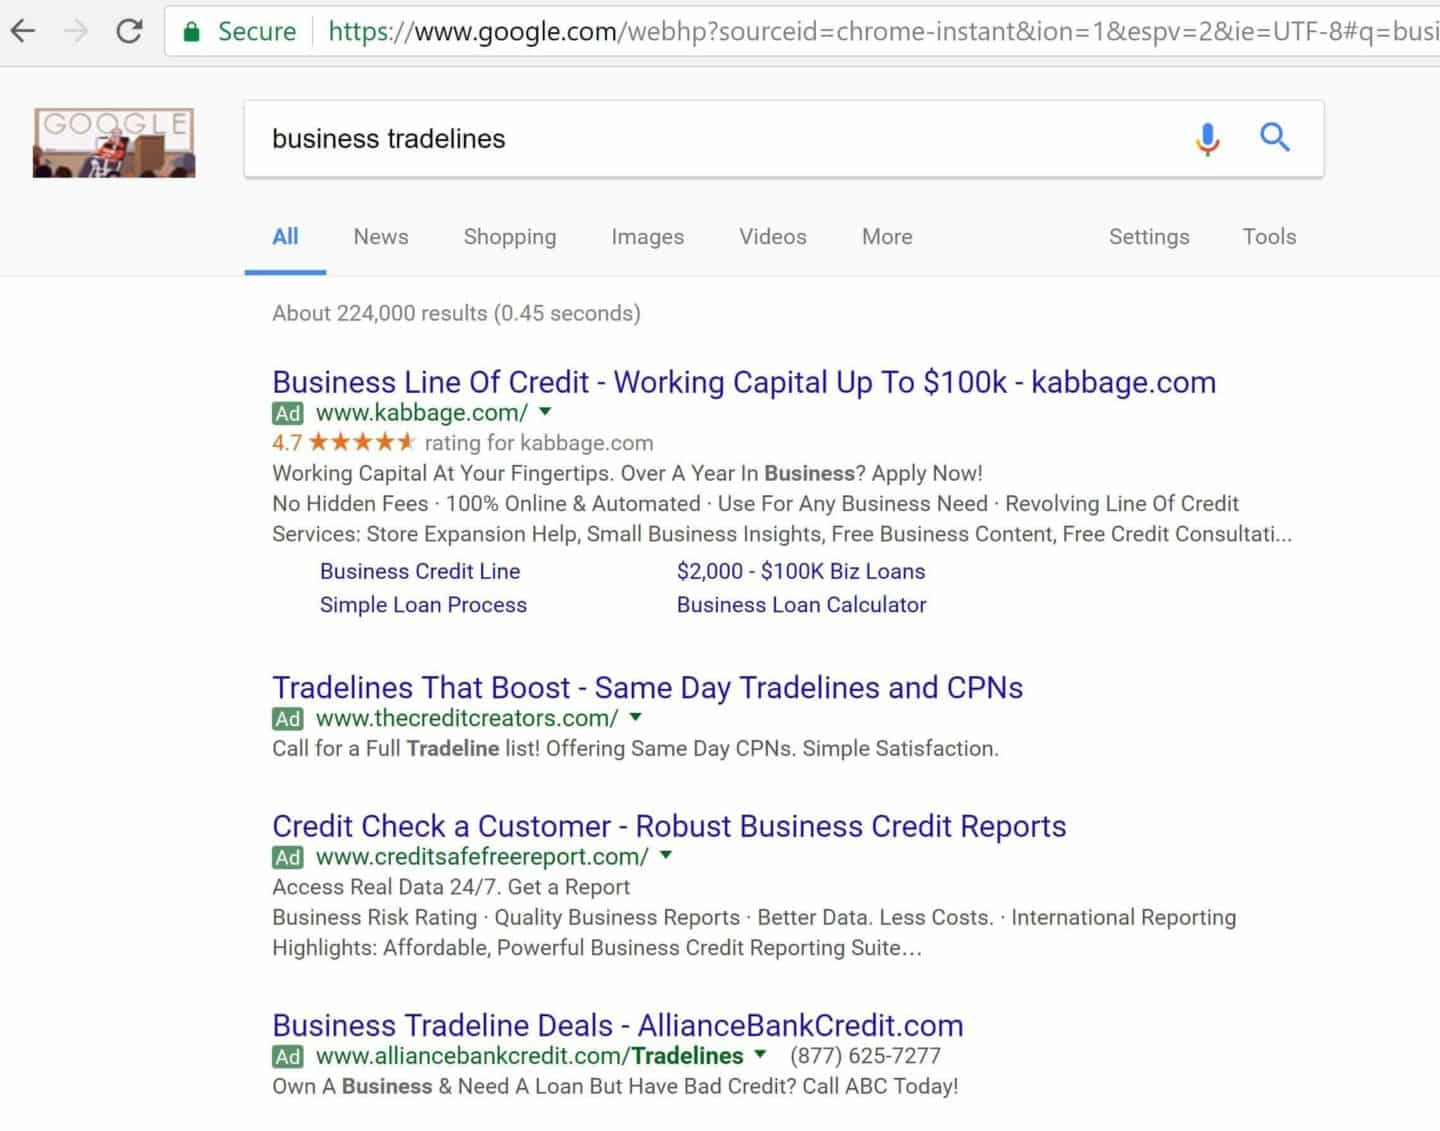 business tradelines search